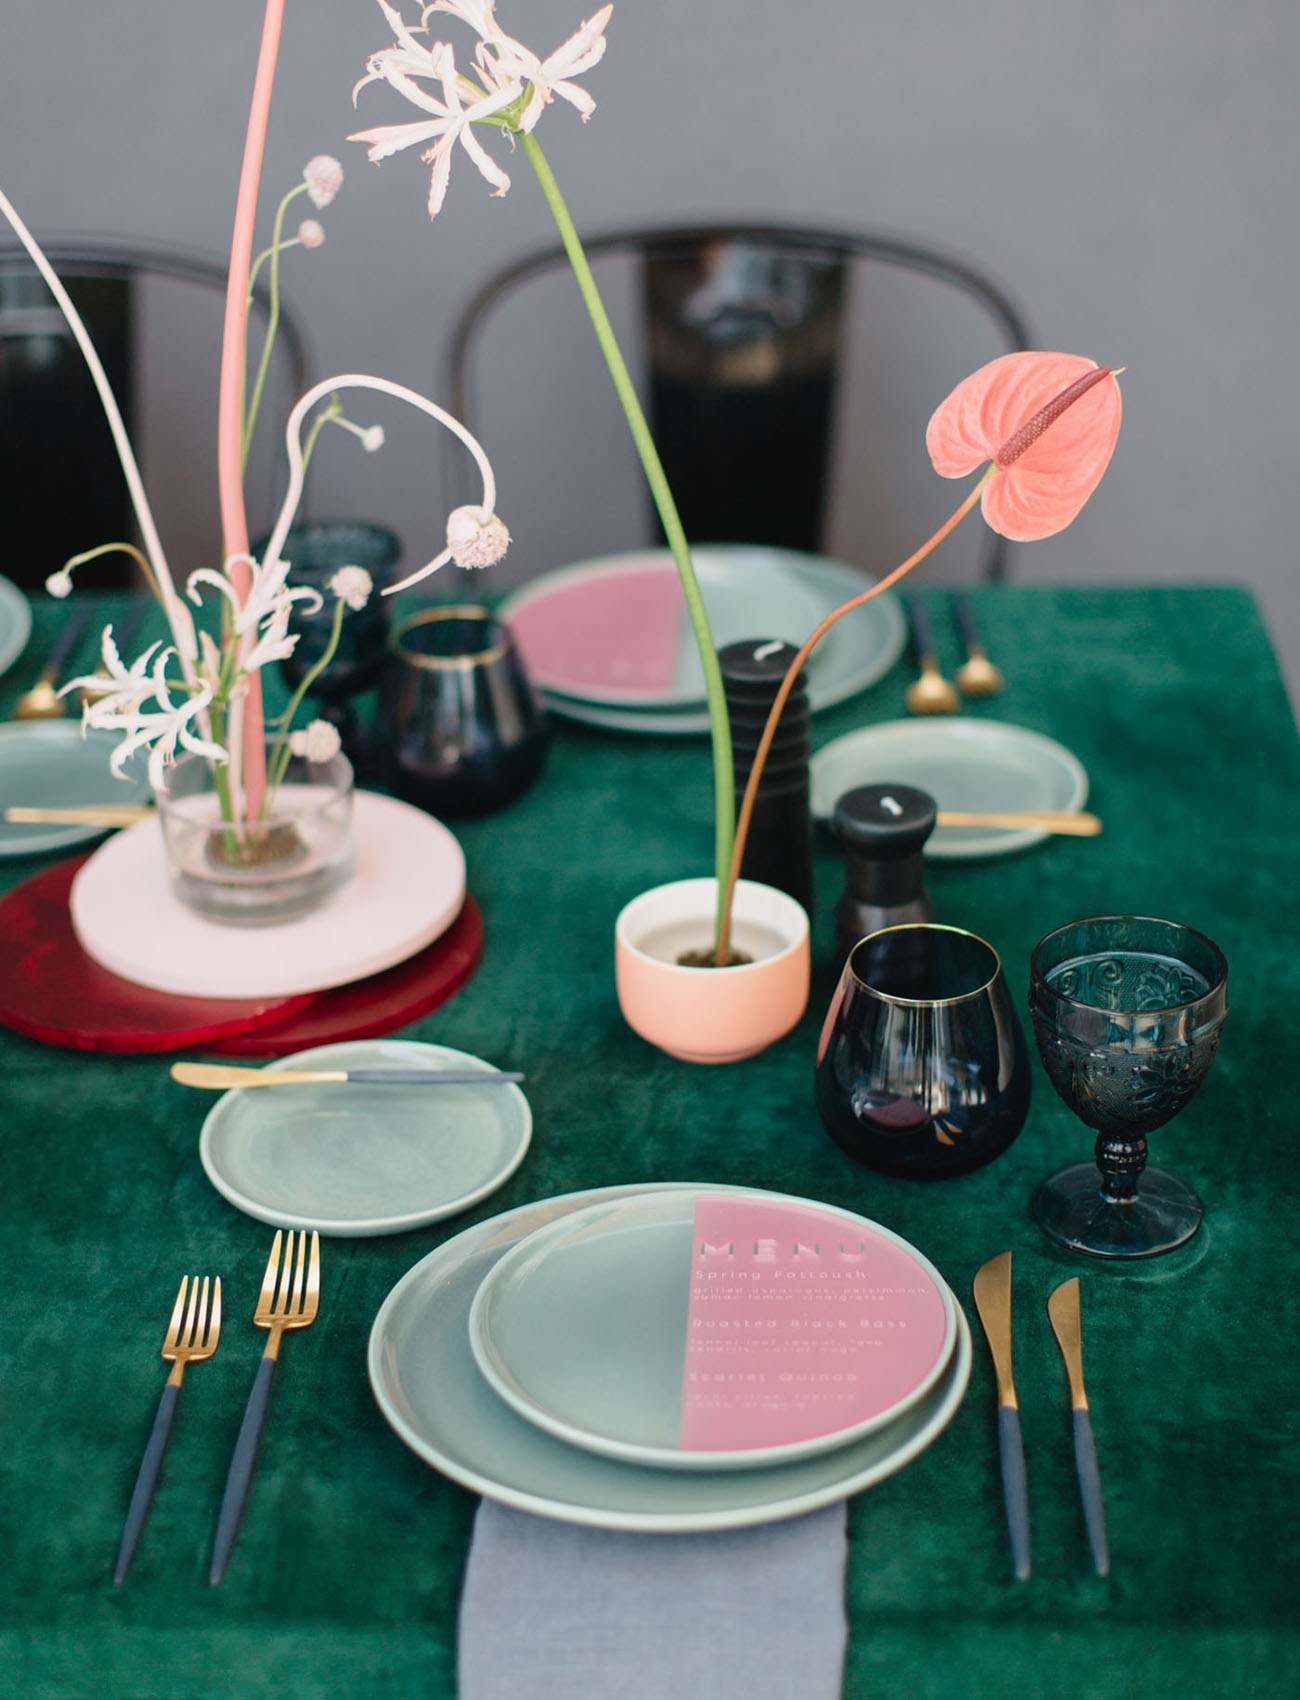 green tableware plates